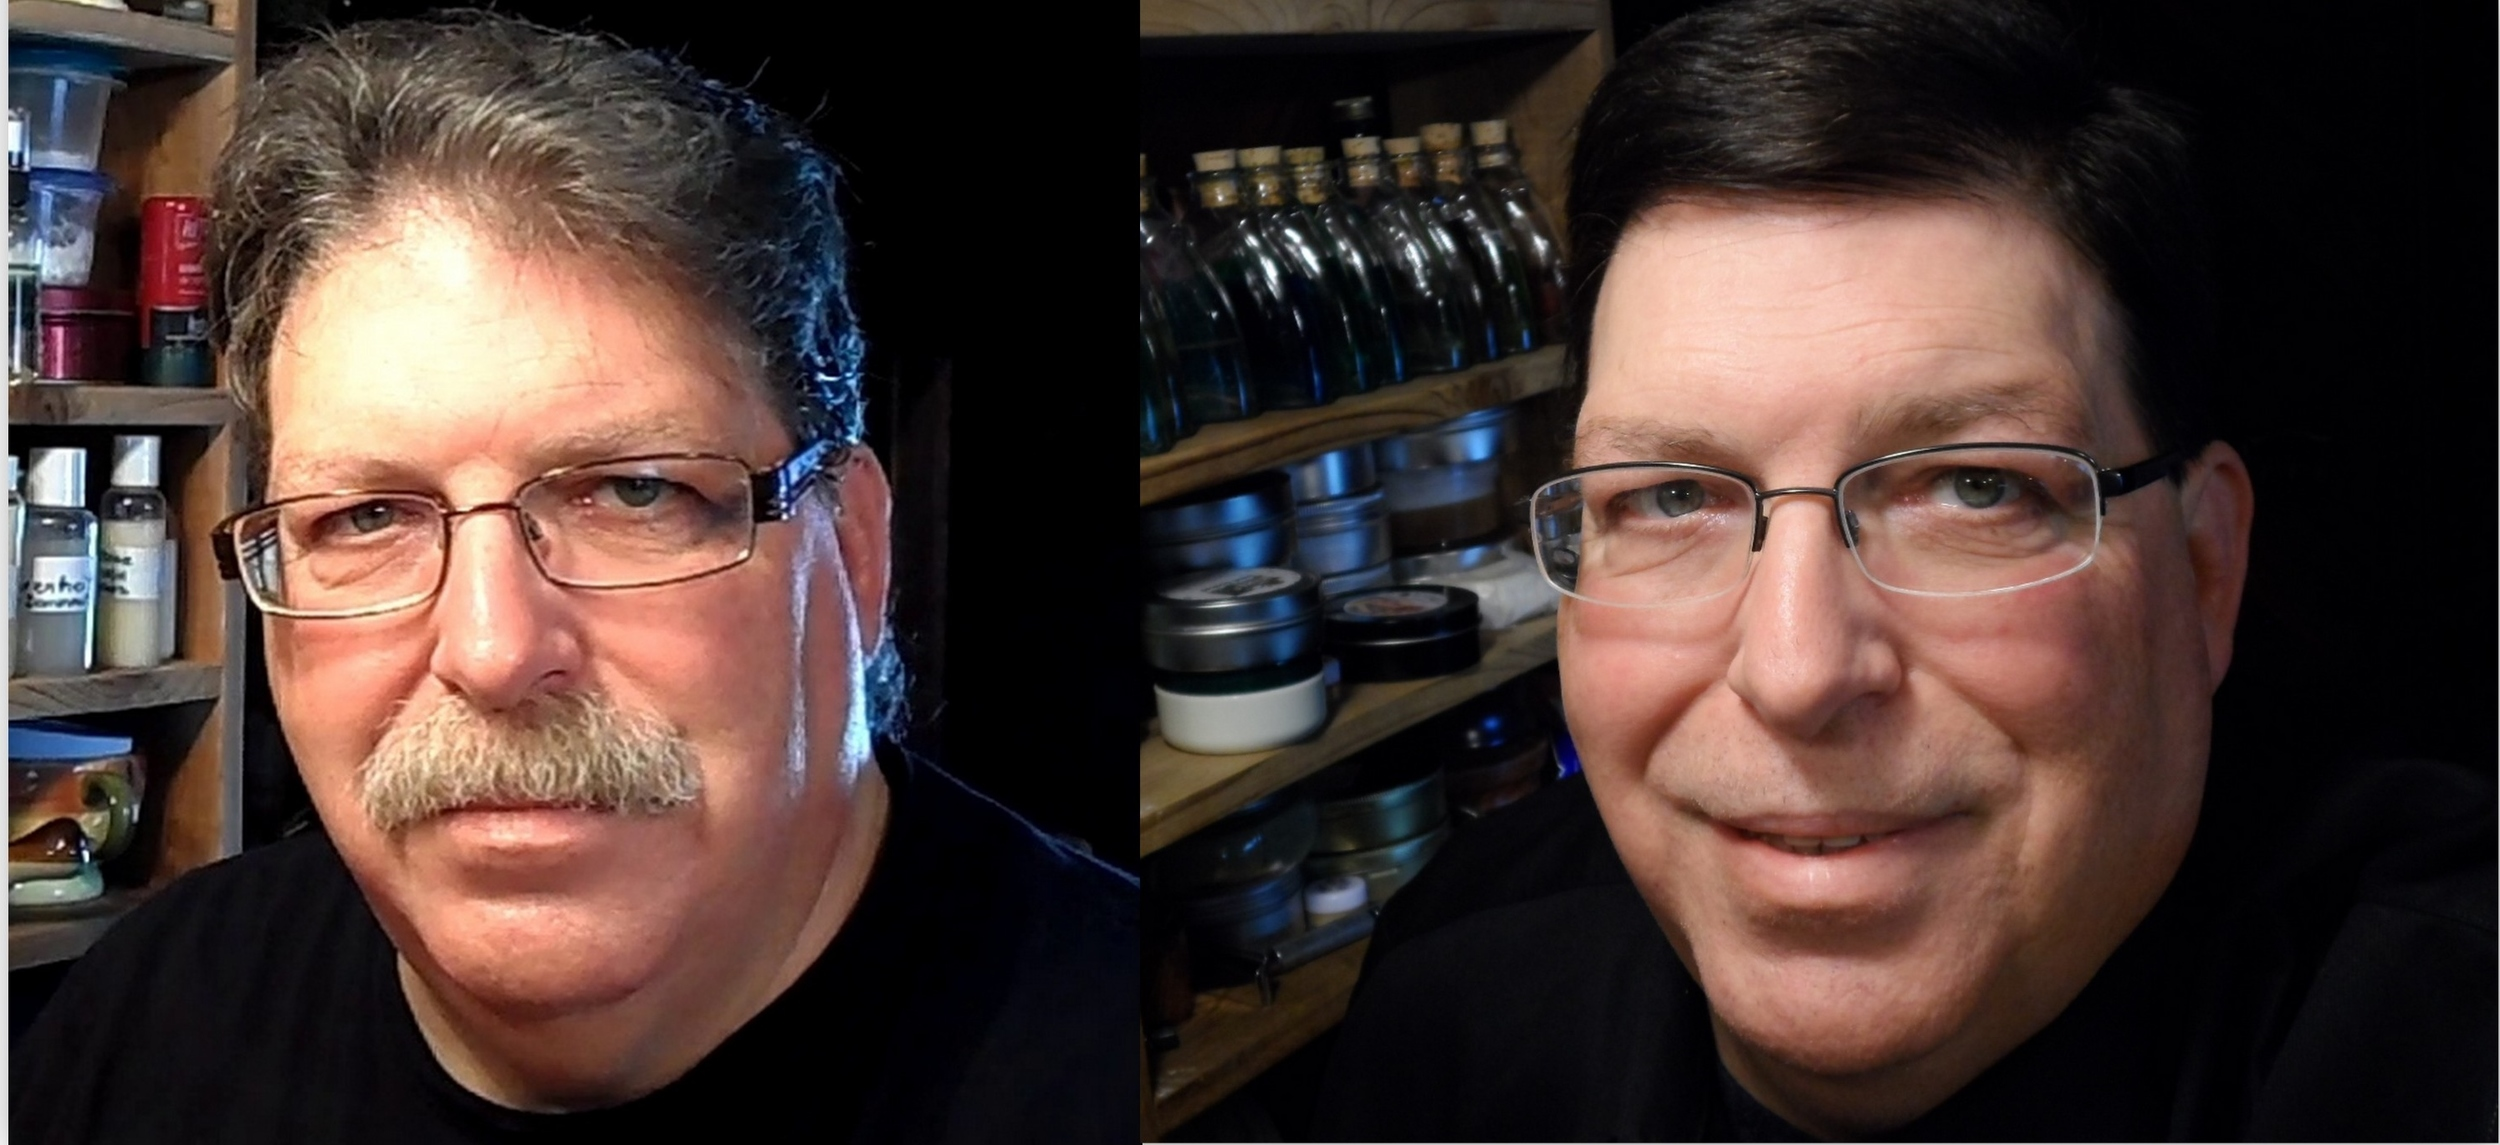 February 2014 (one month before the death of my wife)vs November 2014